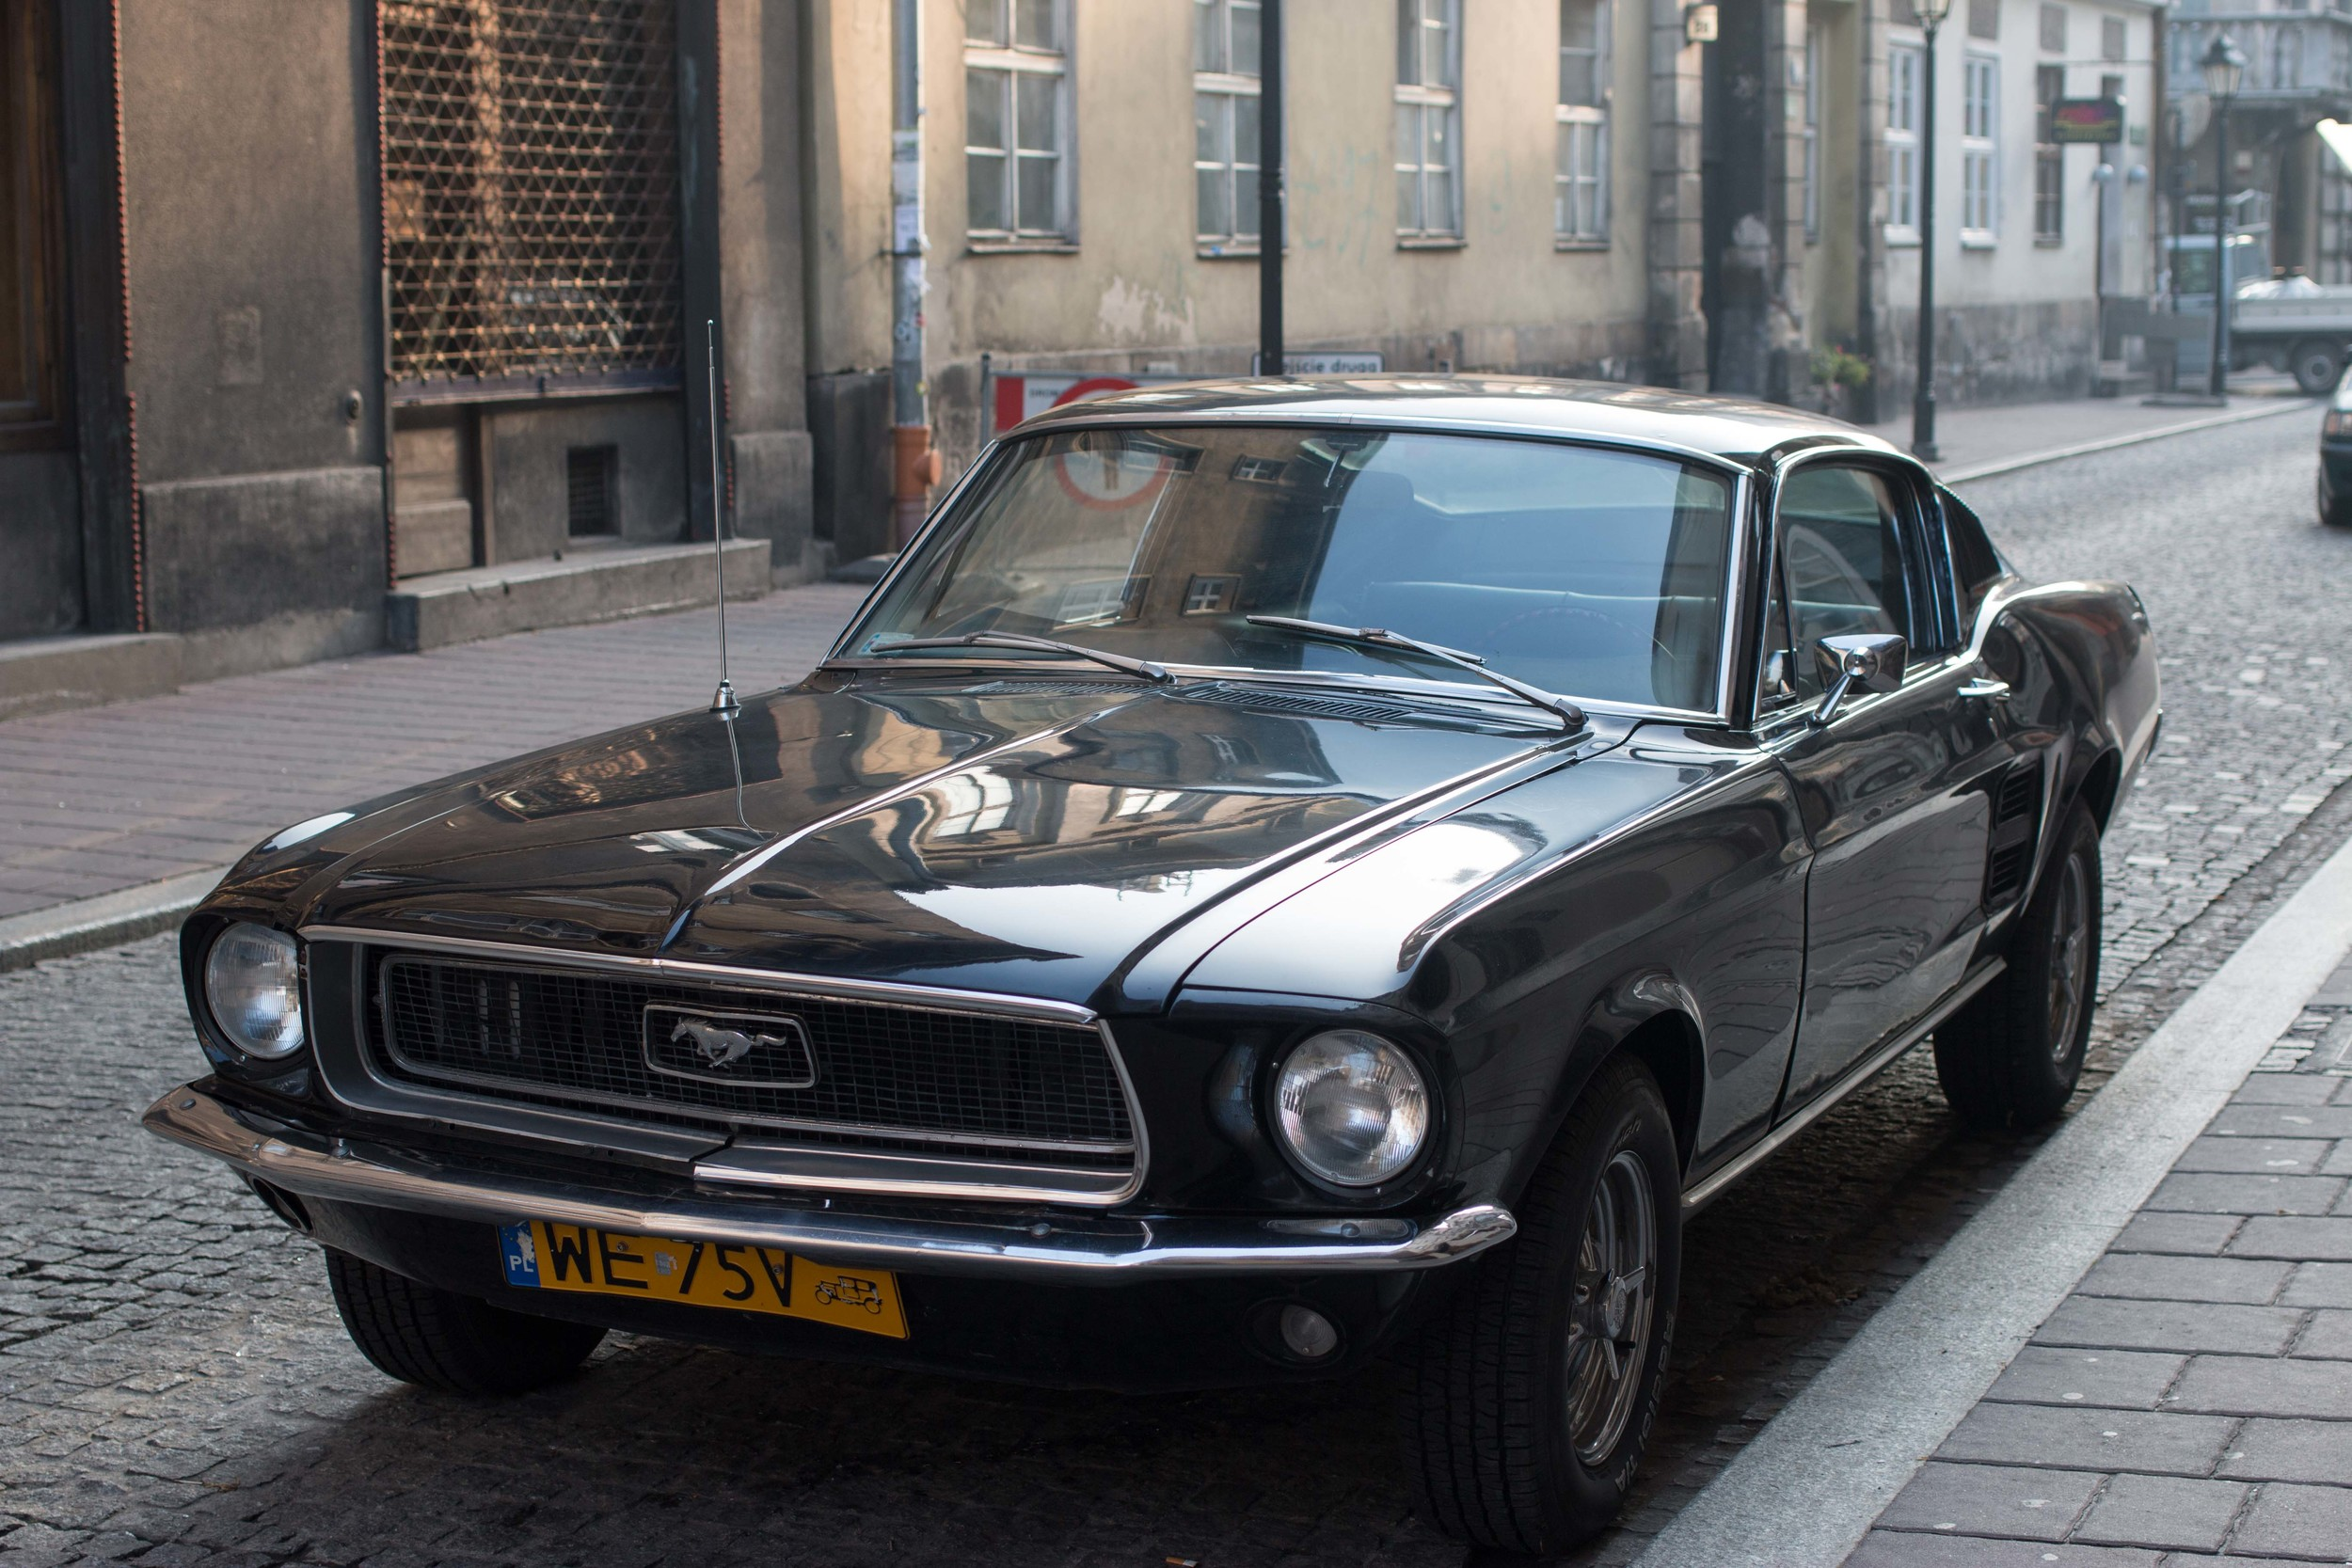 Europeans have a love affair with the mustang.